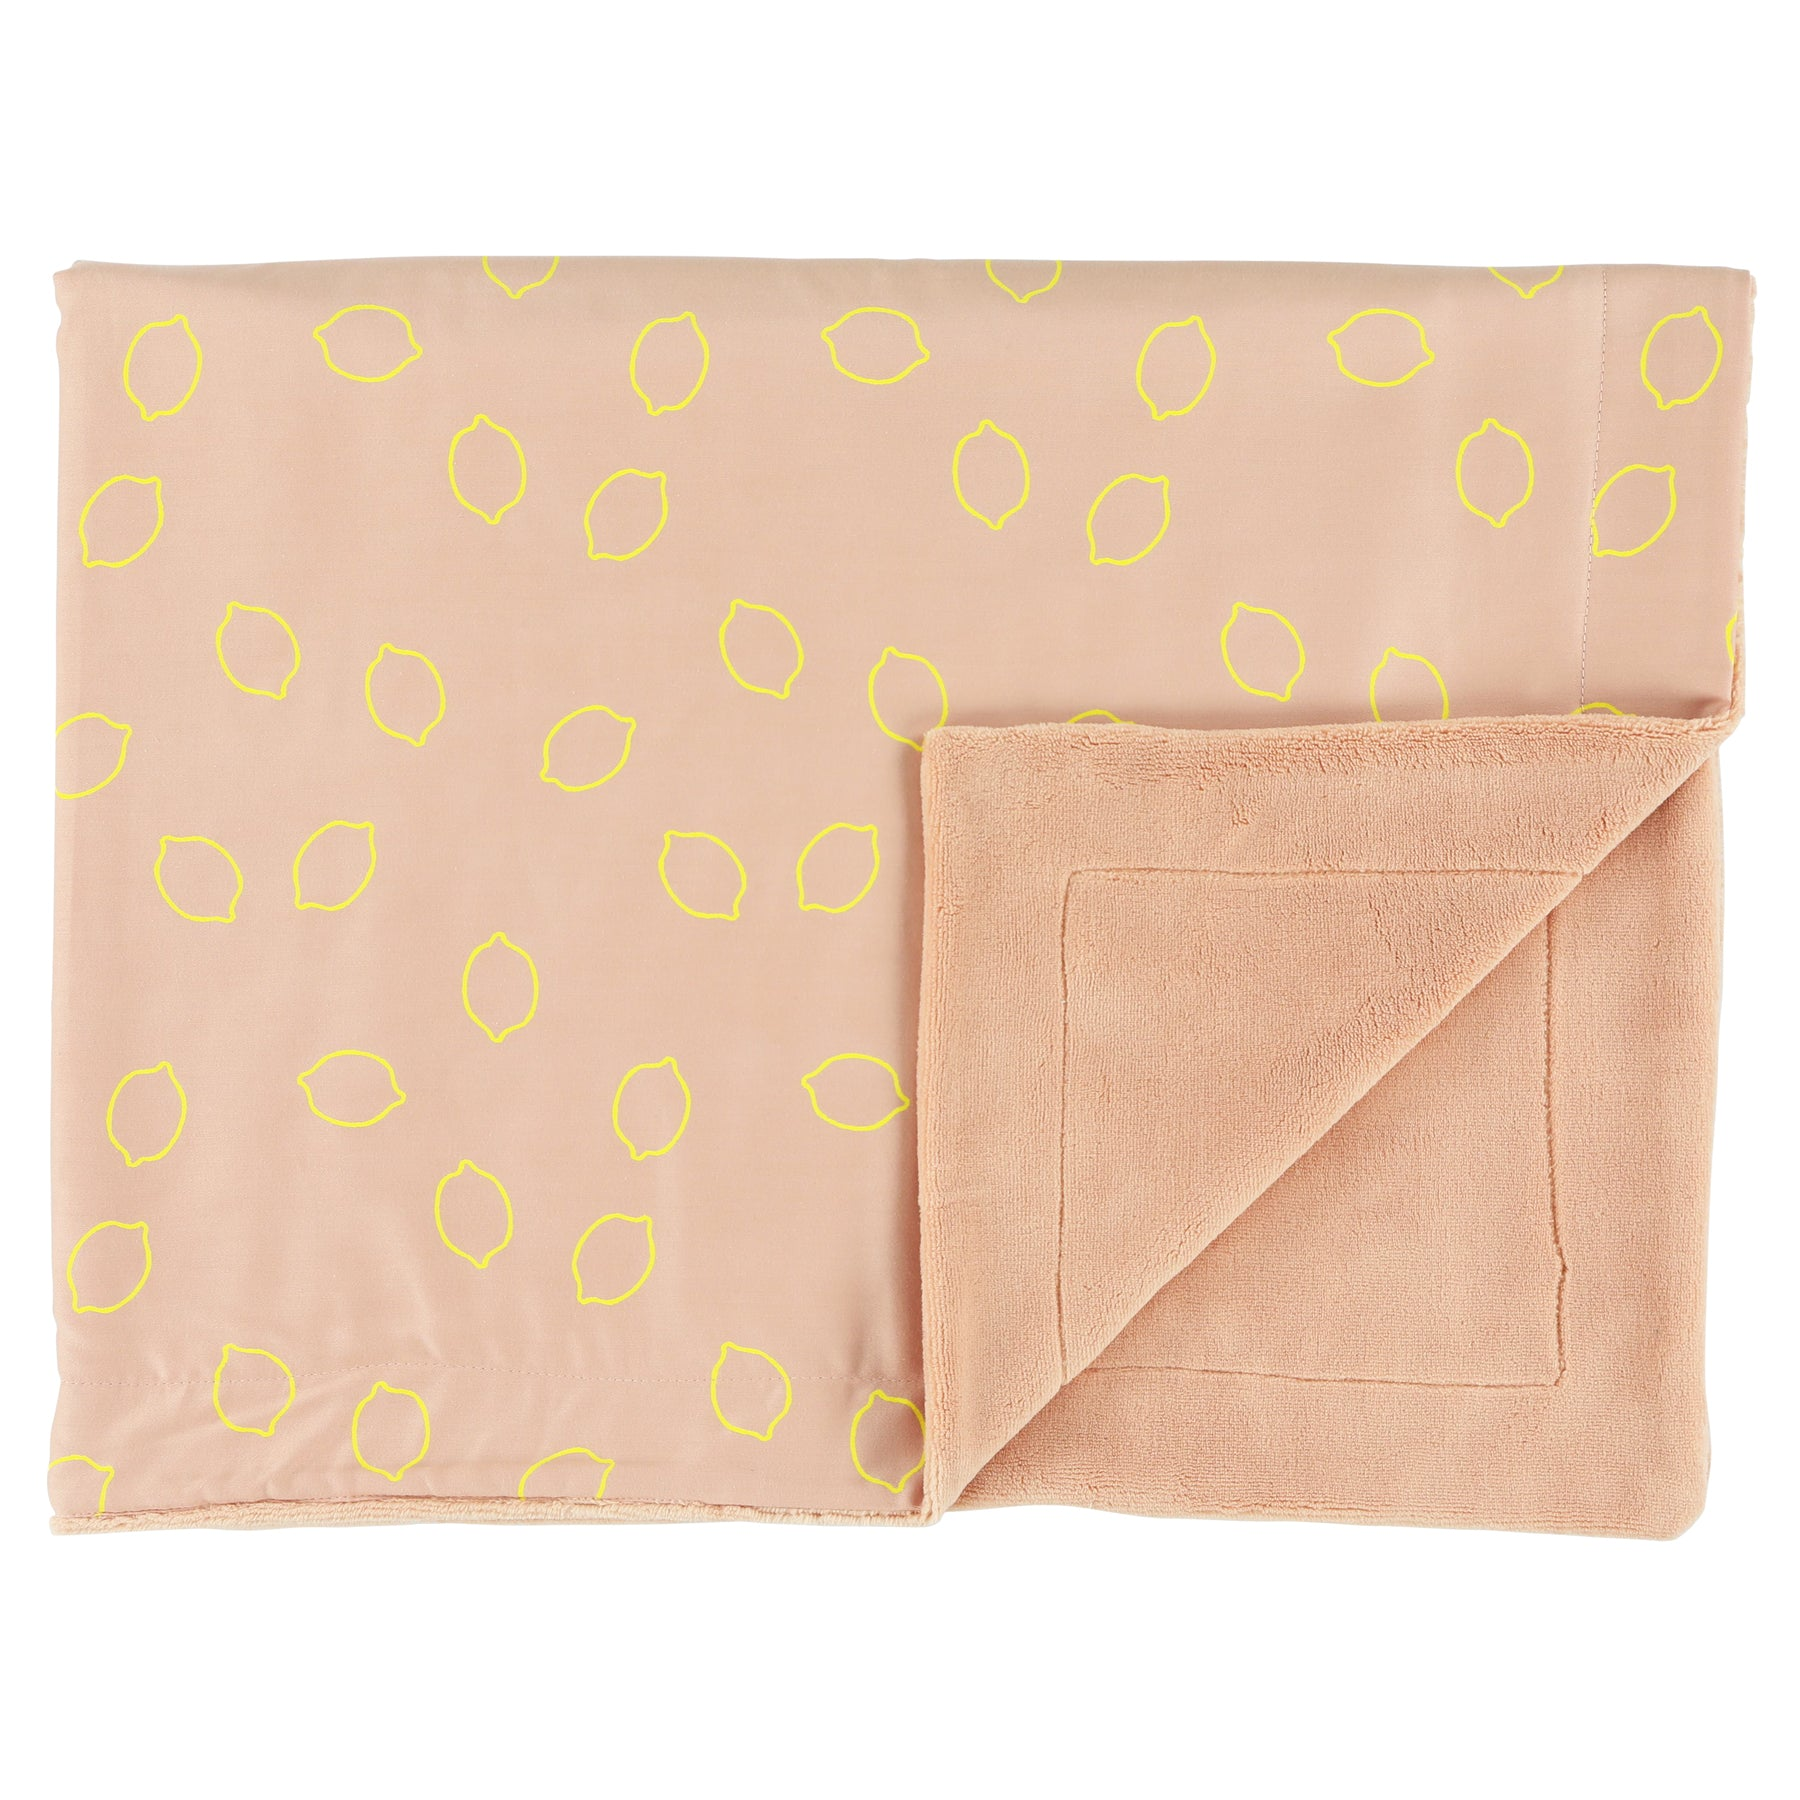 Fleece blanket Lemon Squash (75 x 100cm)